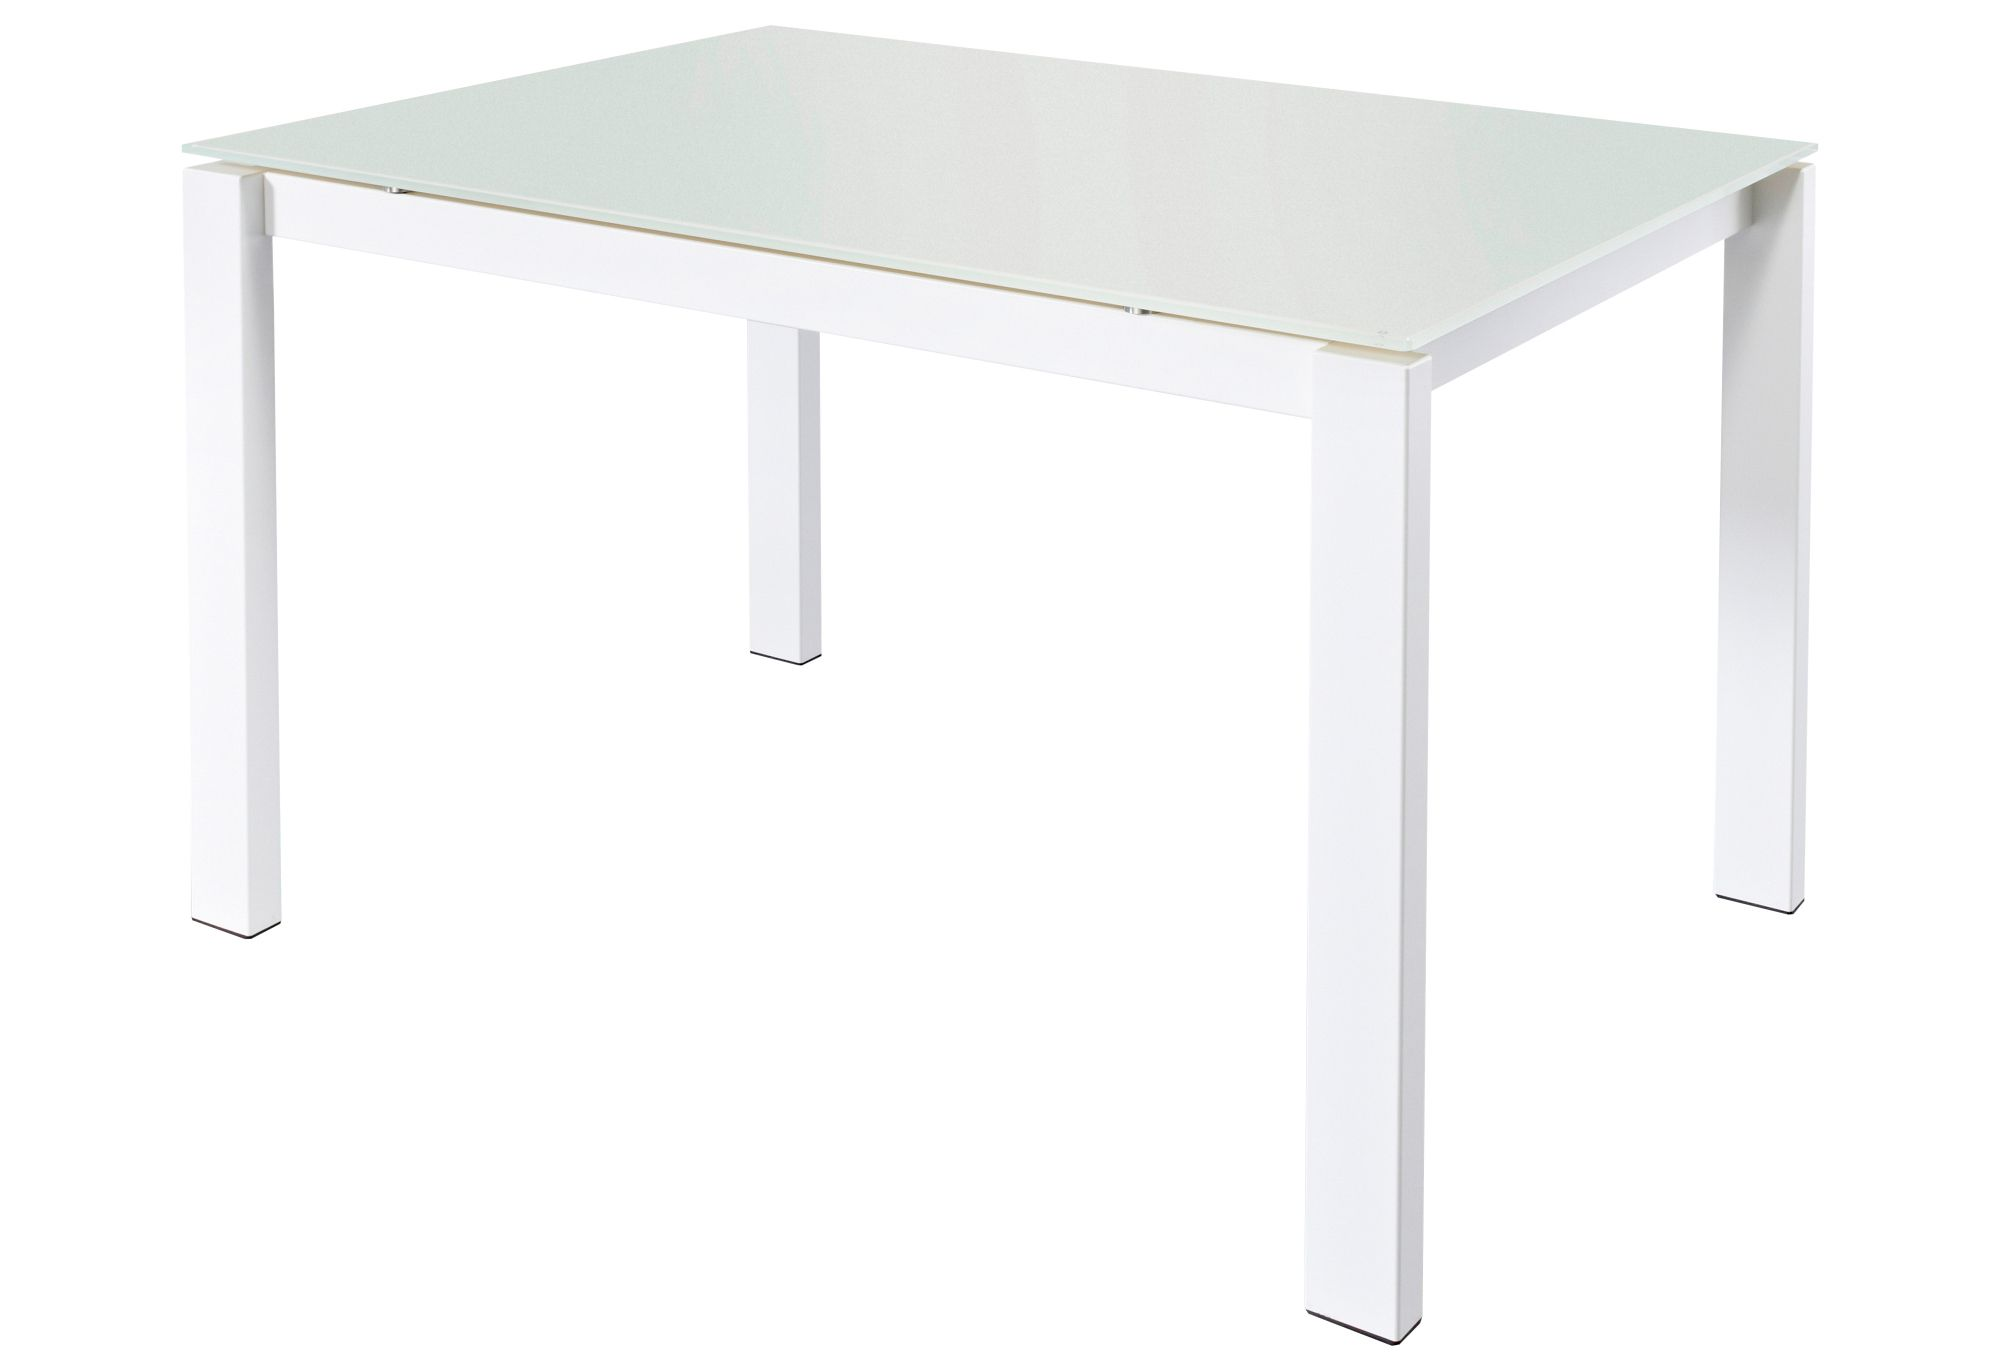 CONNUBIA BY CALLIGARIS connubia by calligaris Tisch »CB/4010 Baron«